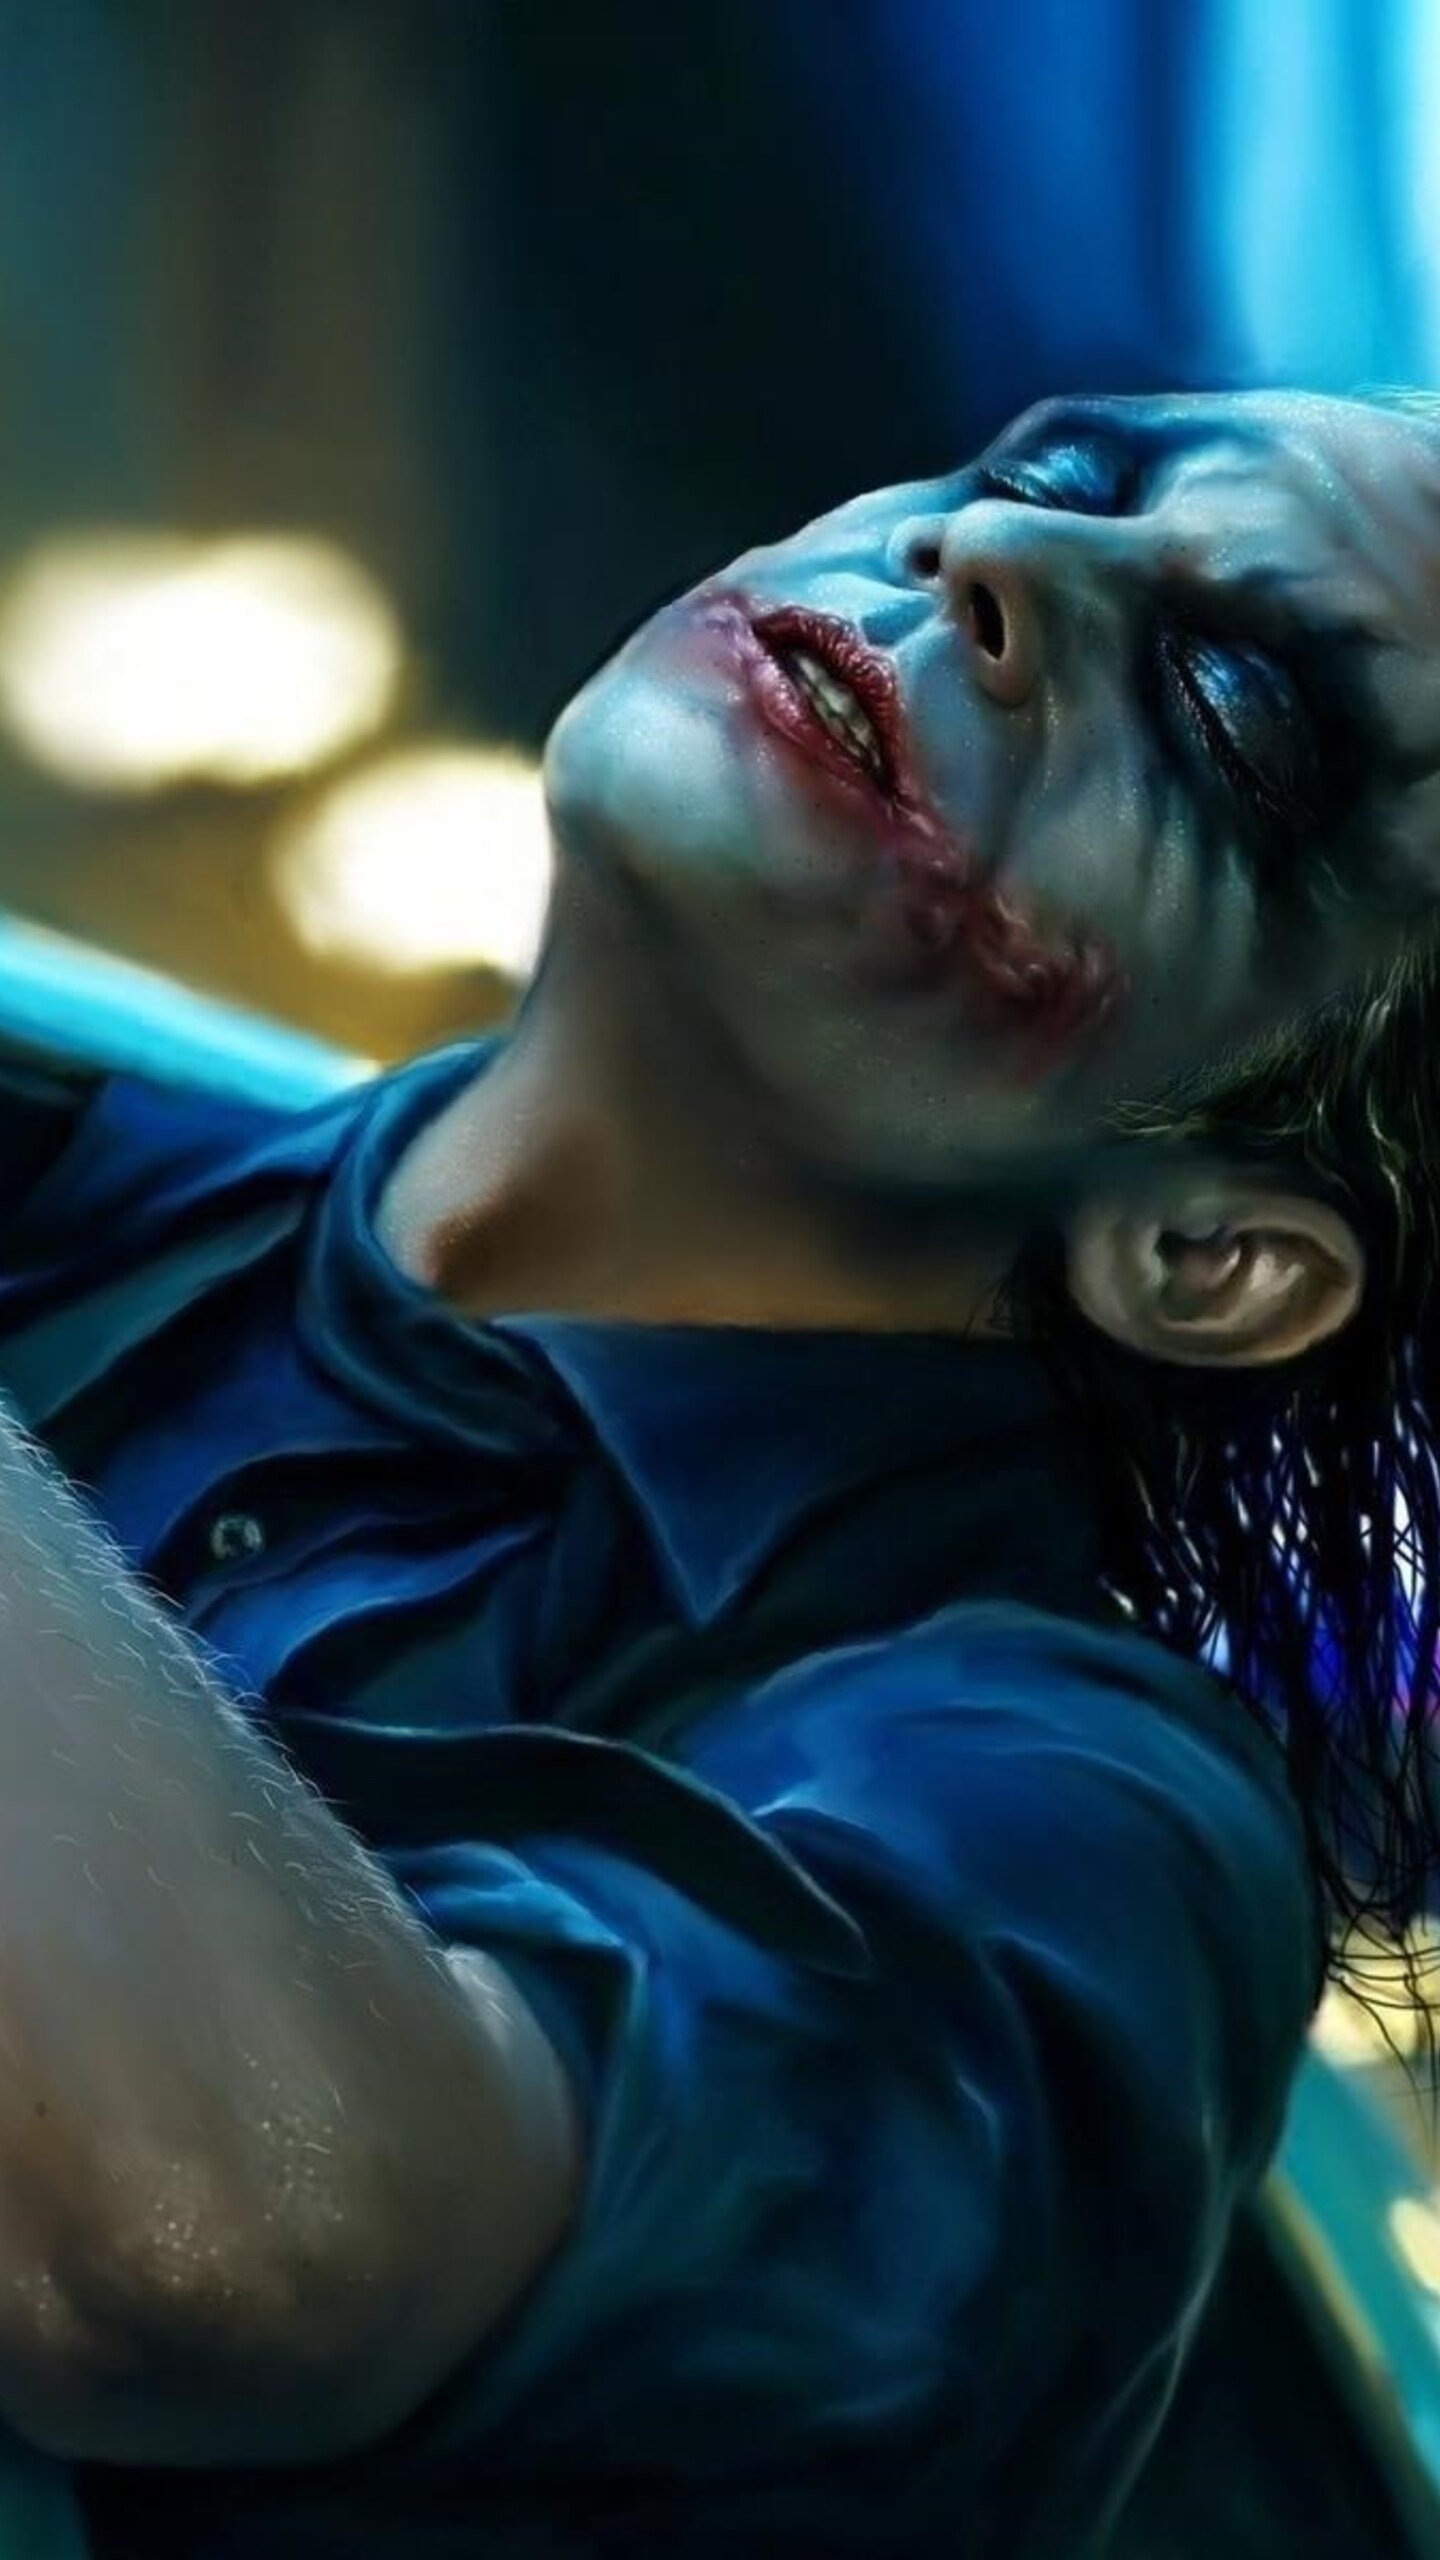 the-dark-knight-joker-artwork-qhd.jpg